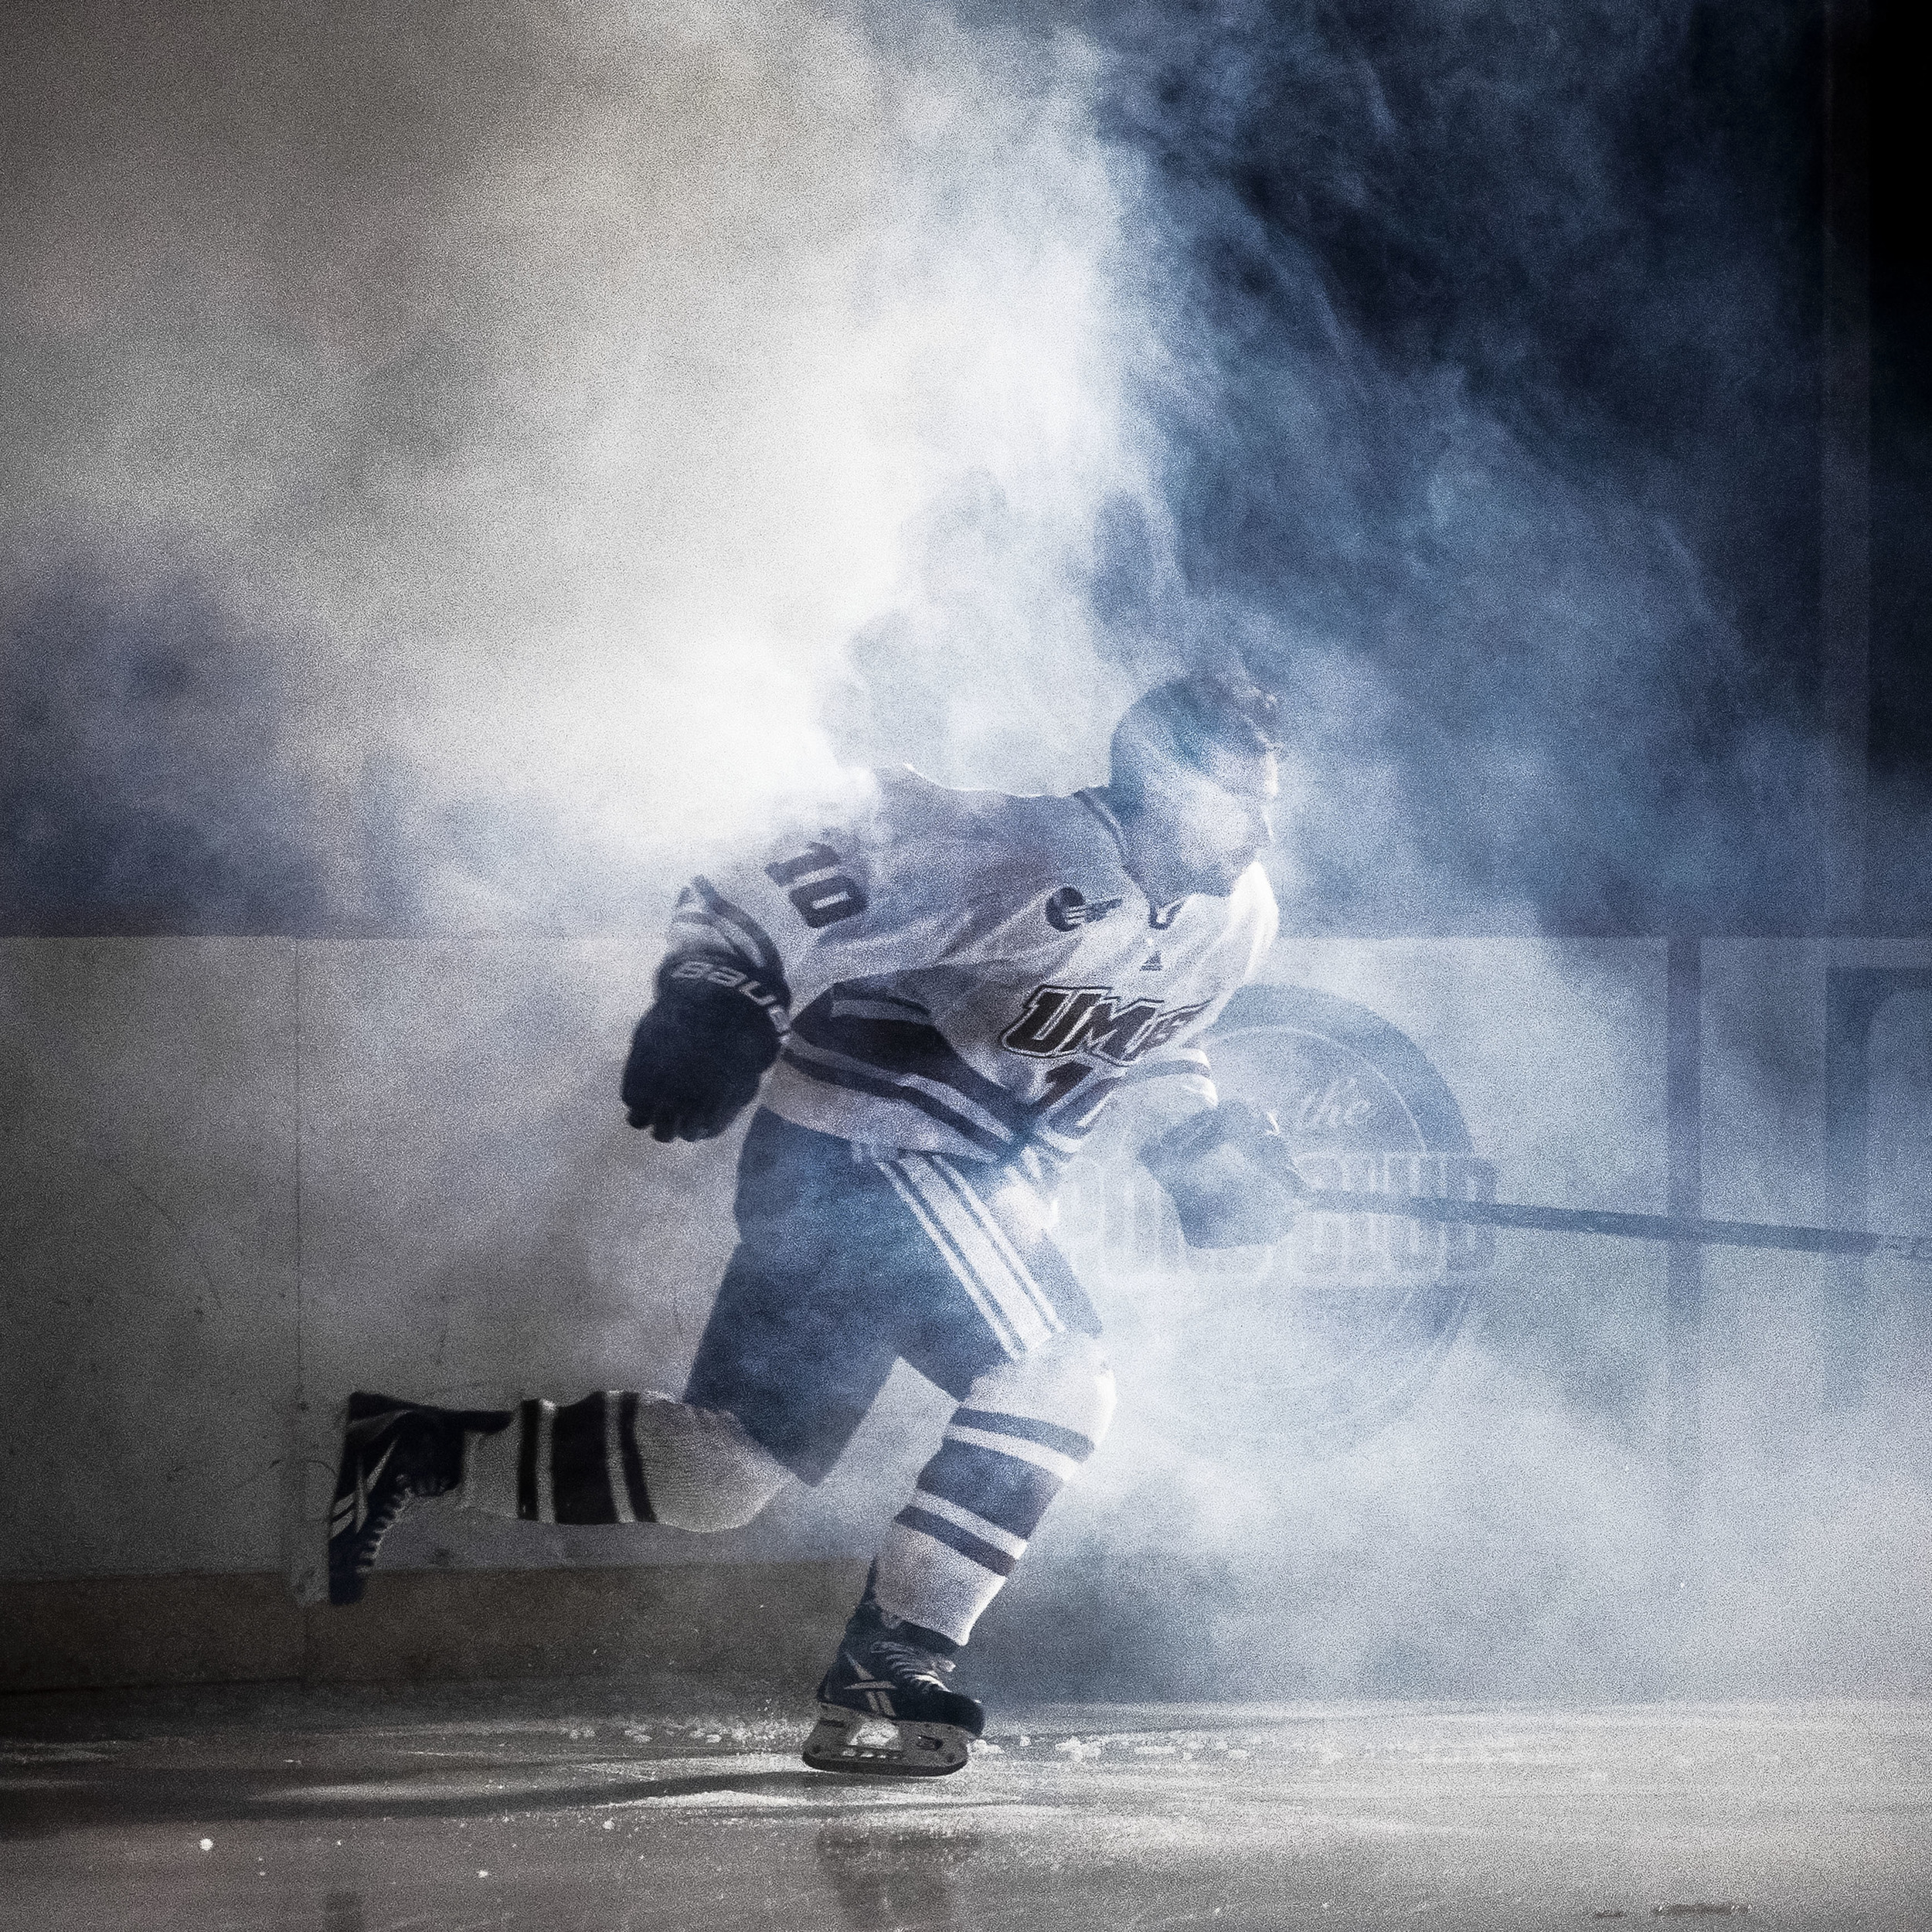 UMASS Amherst's Eric Filiou skates through ceremonial smoke before a game at the Mullins Center in Amherst, Massachusetts.